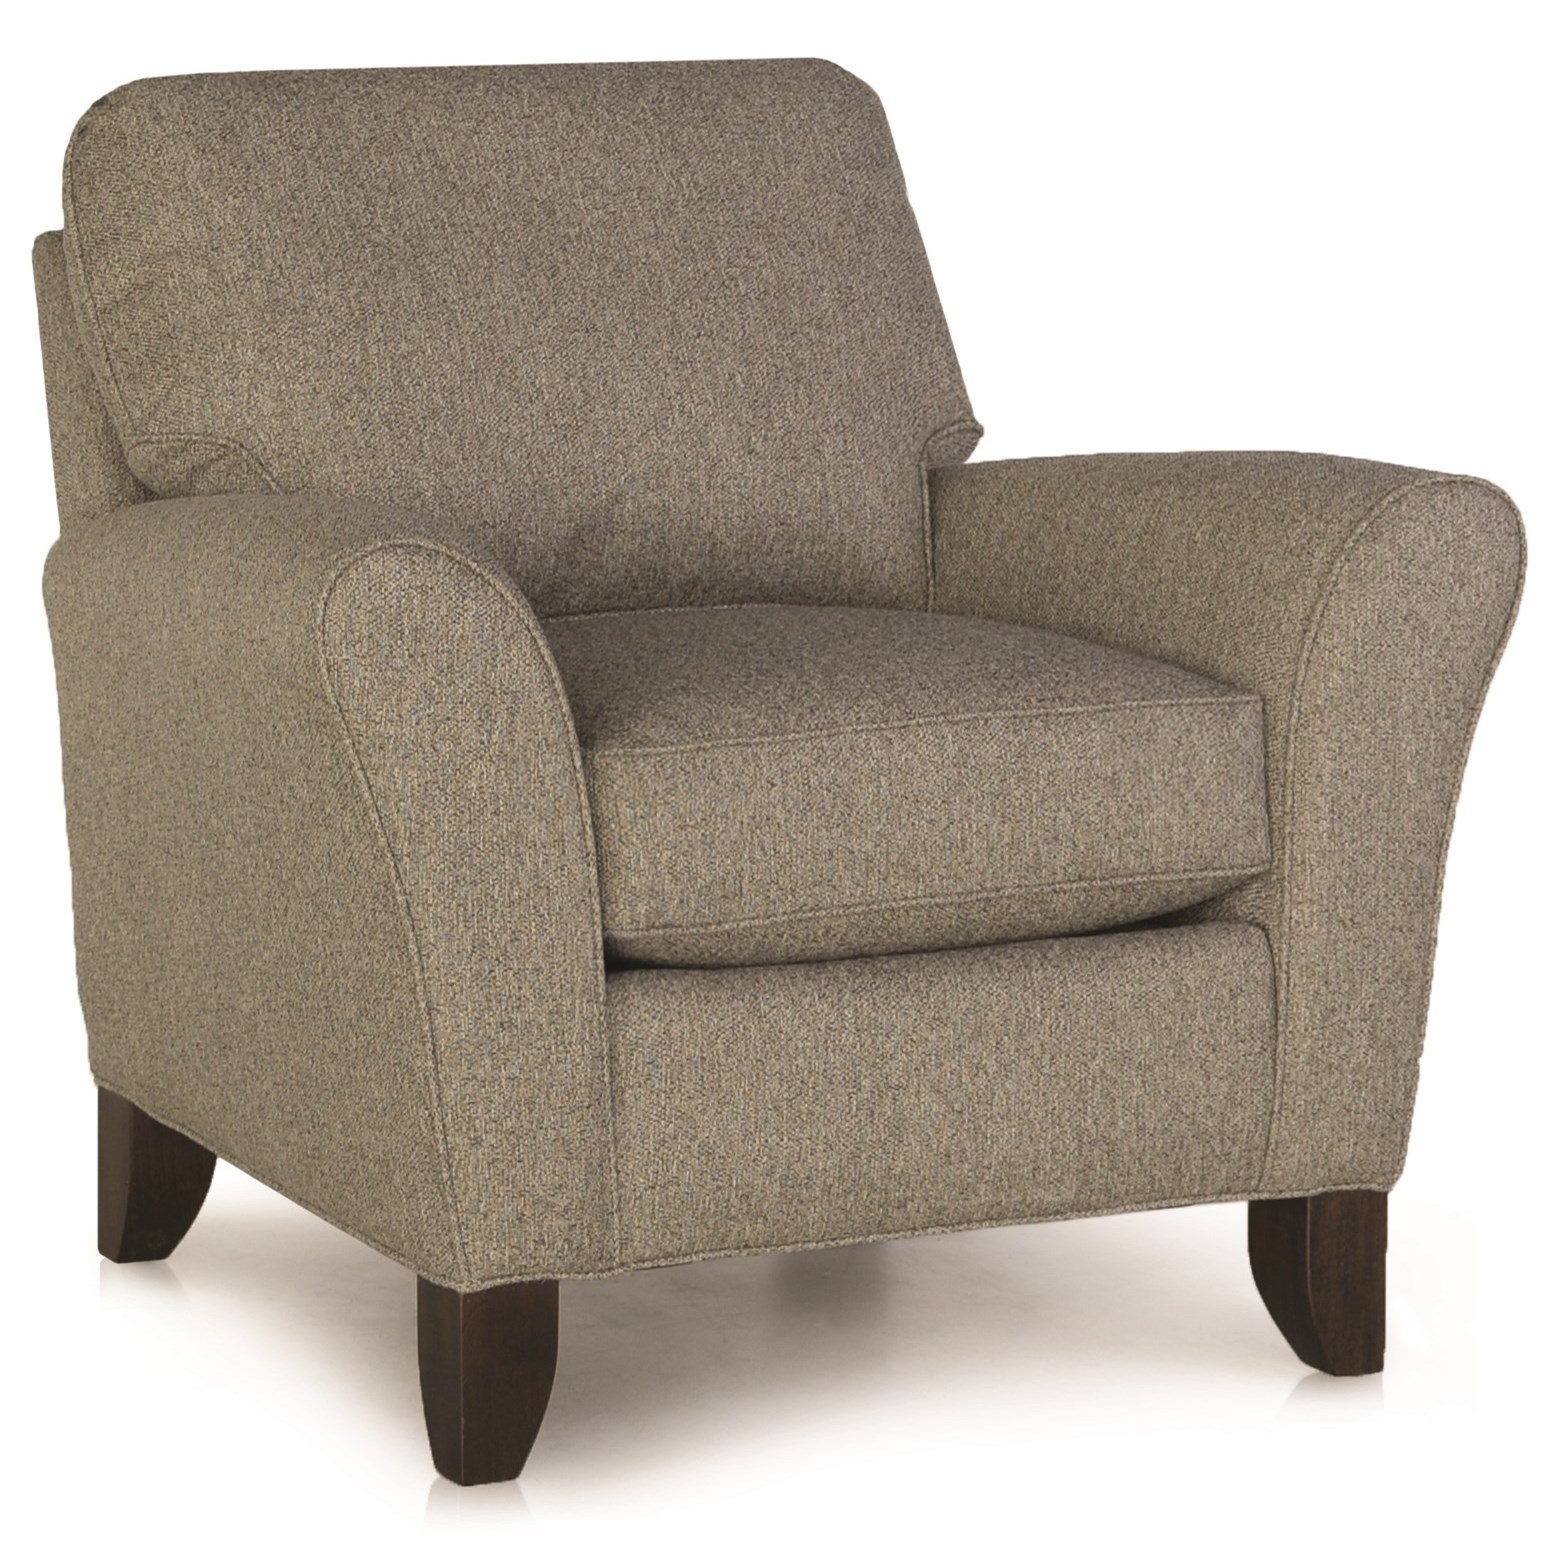 344 Upholstered Chair by Smith Brothers at Westrich Furniture & Appliances